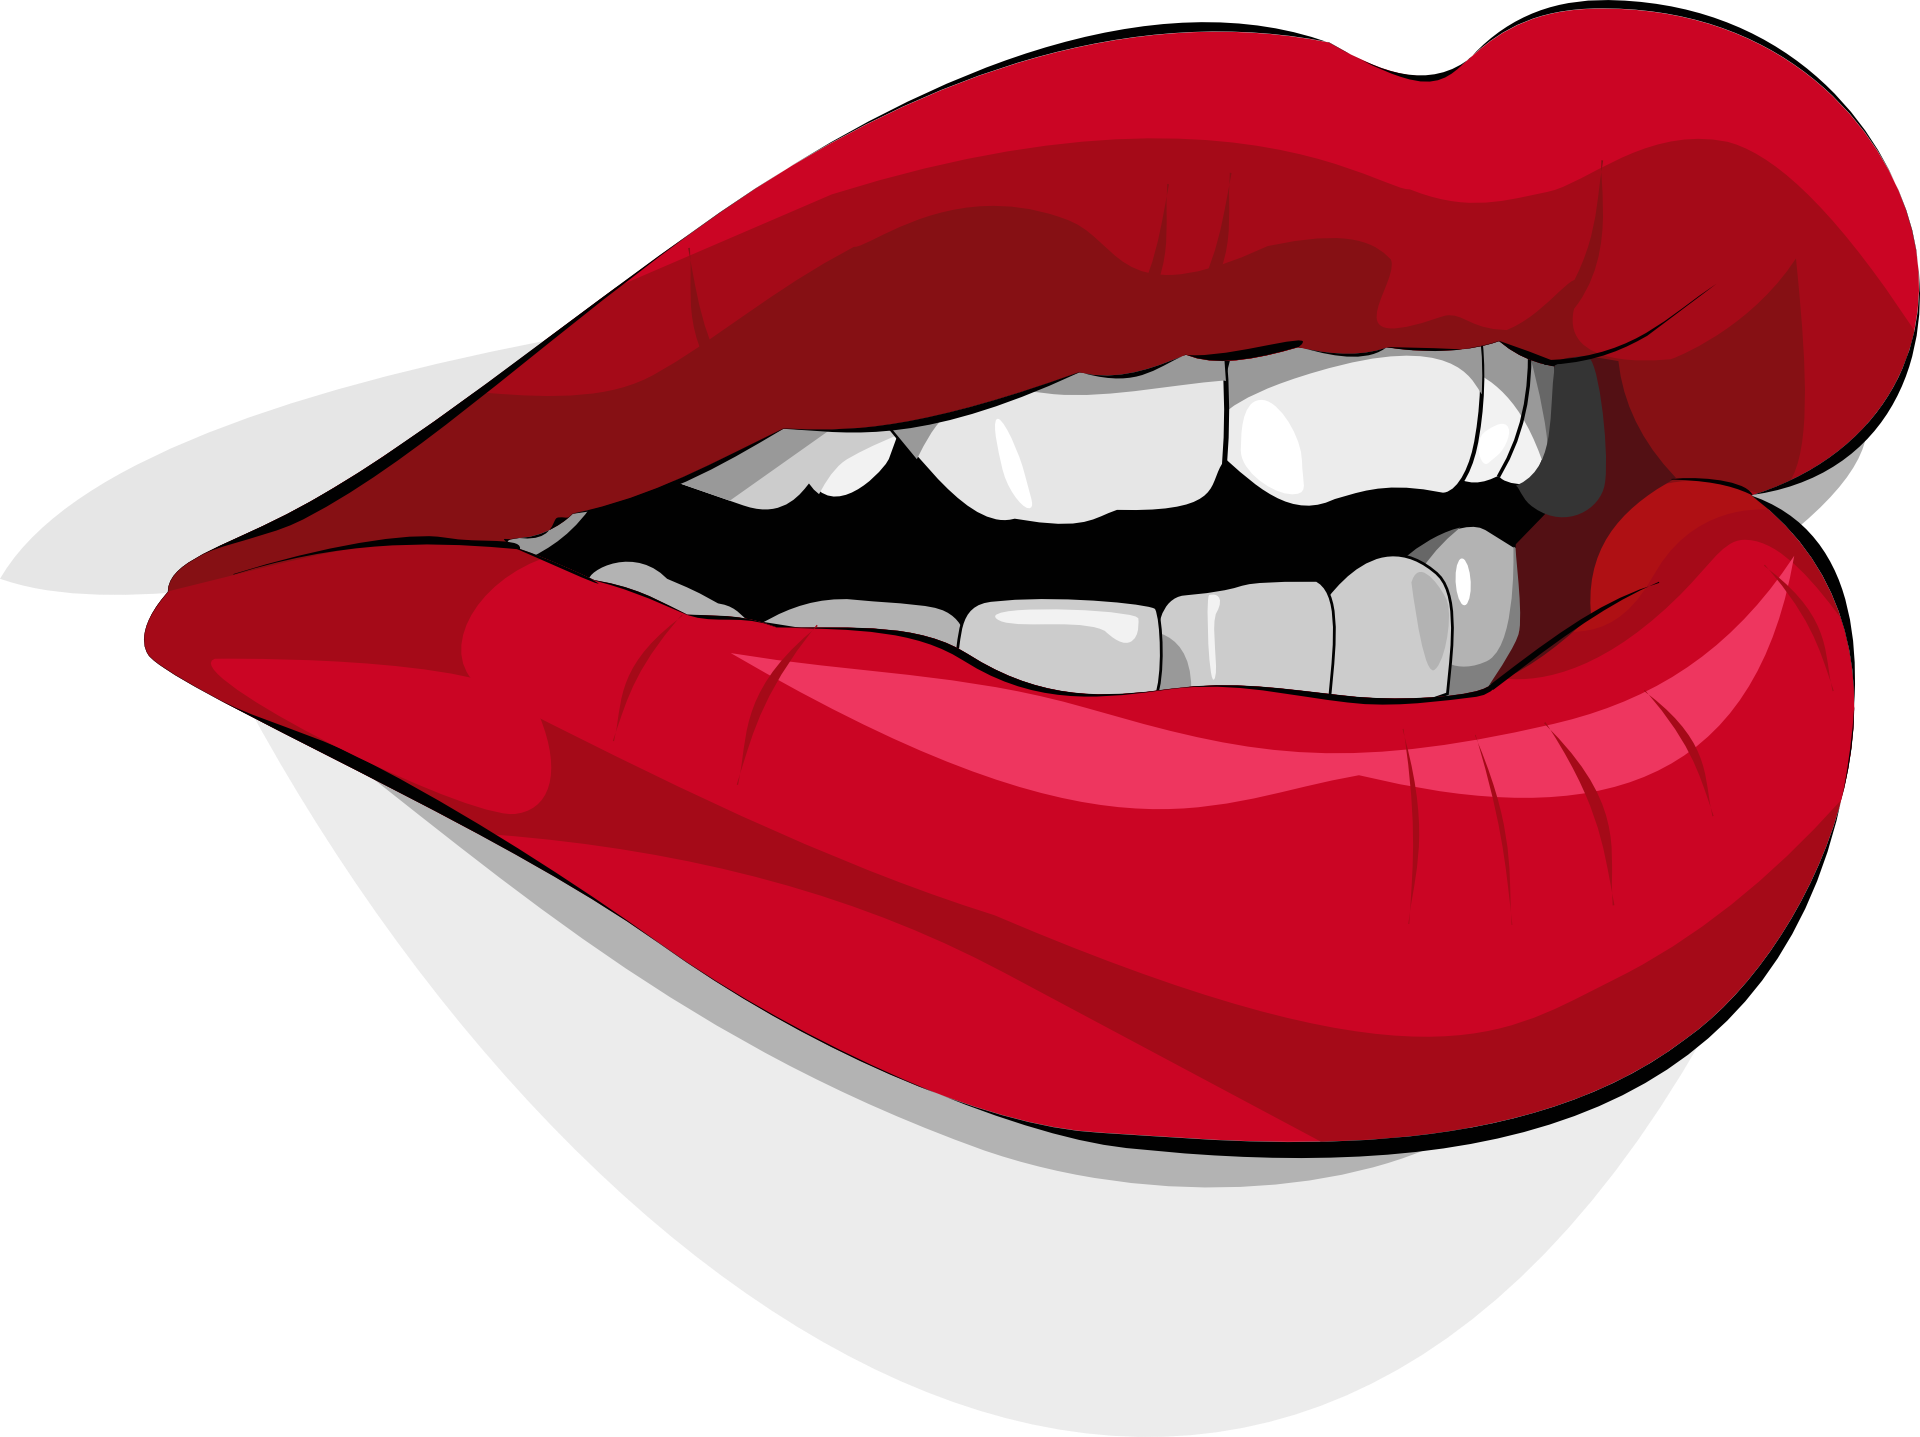 Vampire Clipart Lip Vampire Lip Transparent Free For Download On Webstockreview 2019